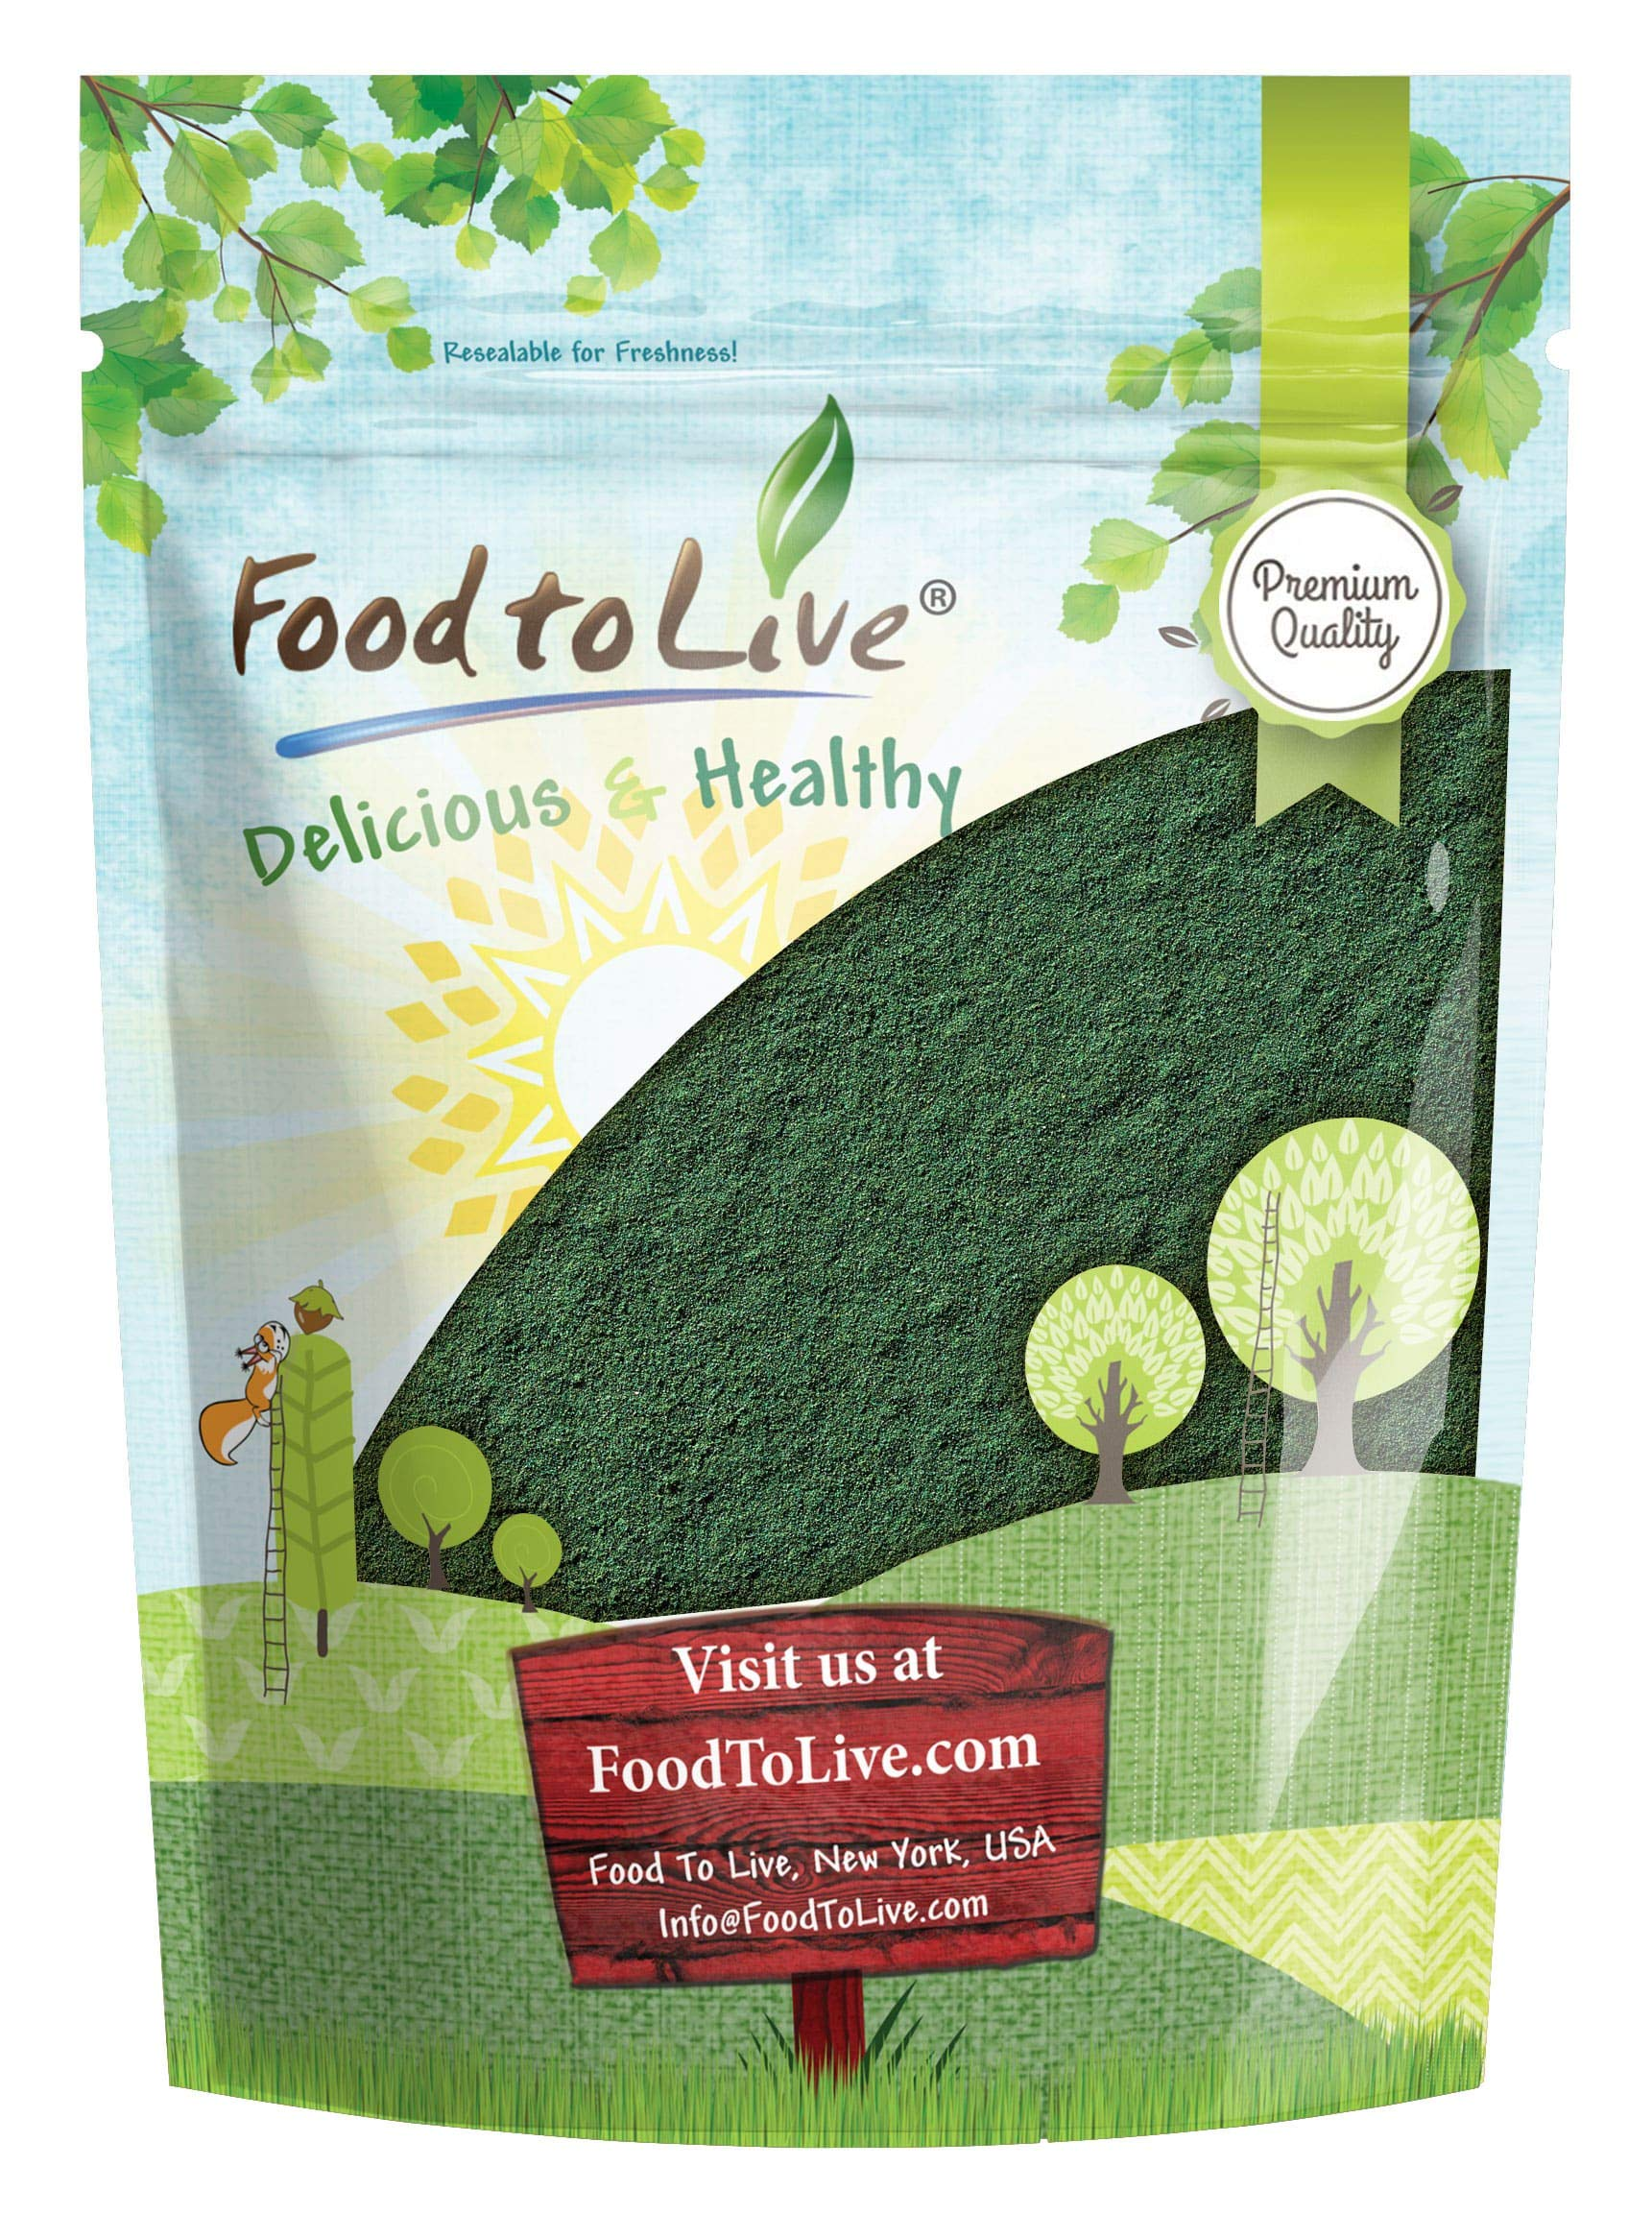 Chlorella Powder, 4 Pounds— Raw Green Algae, Vegan Superfood, Bulk, Pure Vegan Green Protein, Rich in Vitamins and Minerals, Great for Drinks, Teas and Smoothies